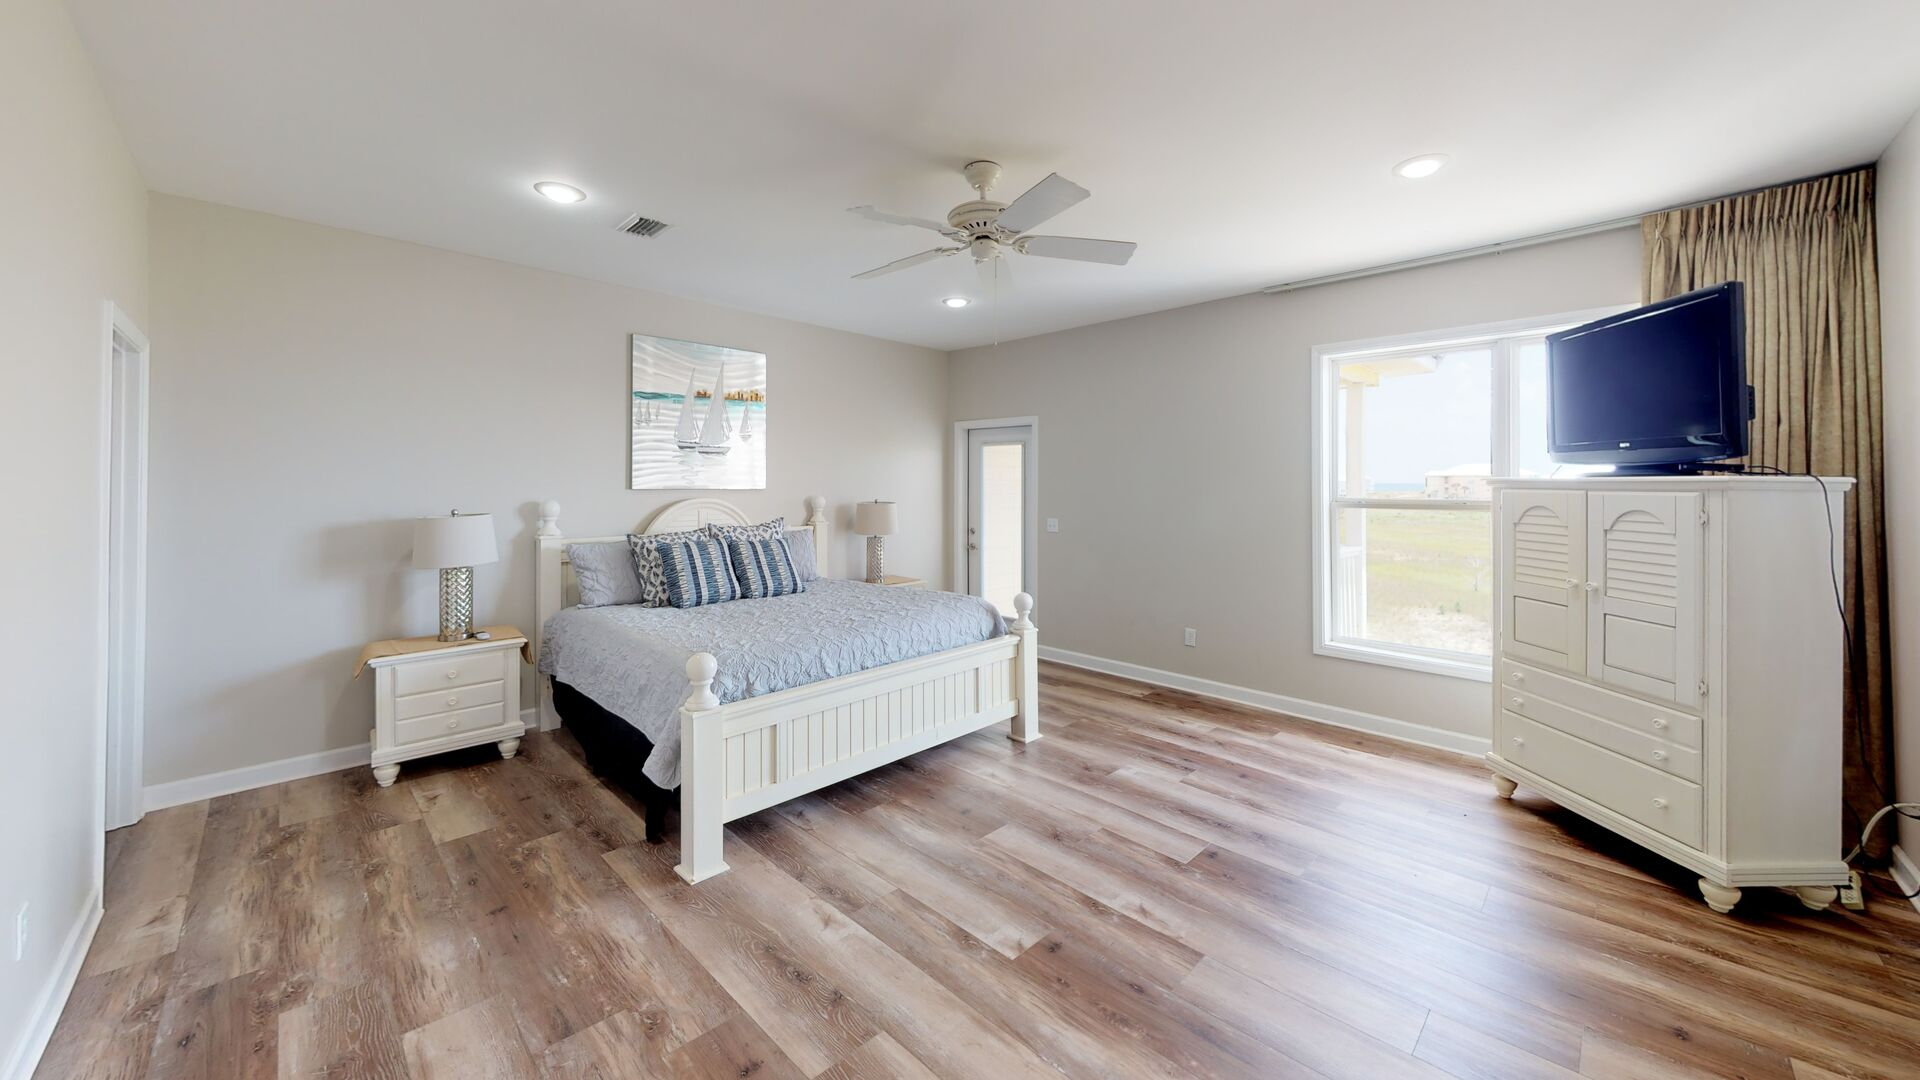 Large Bedroom Has Beautiful Floors and Large Windows.